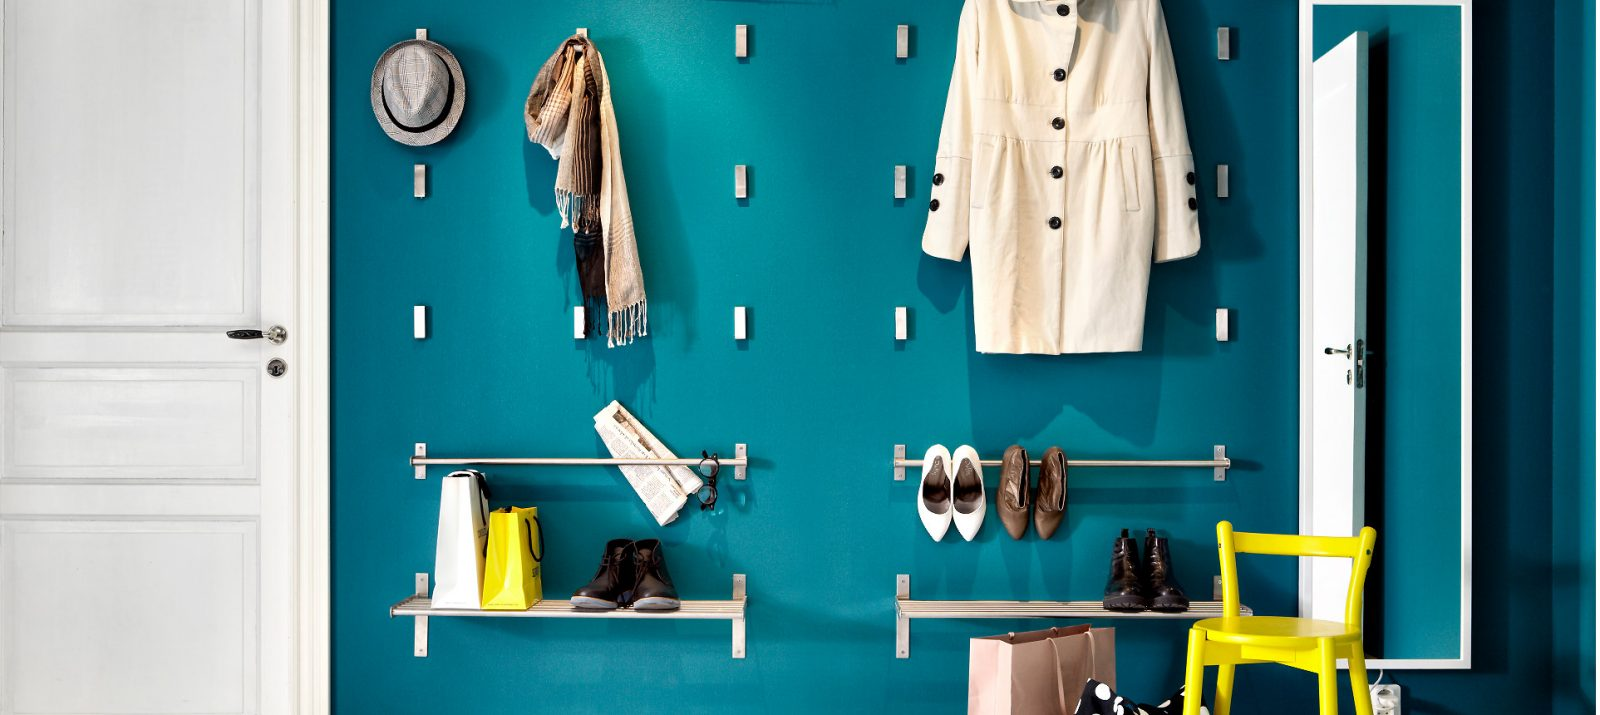 Ikea Bjarnum Folding Hooks Are Stylish And Cheap Bedroom Storage Hacks Solutions